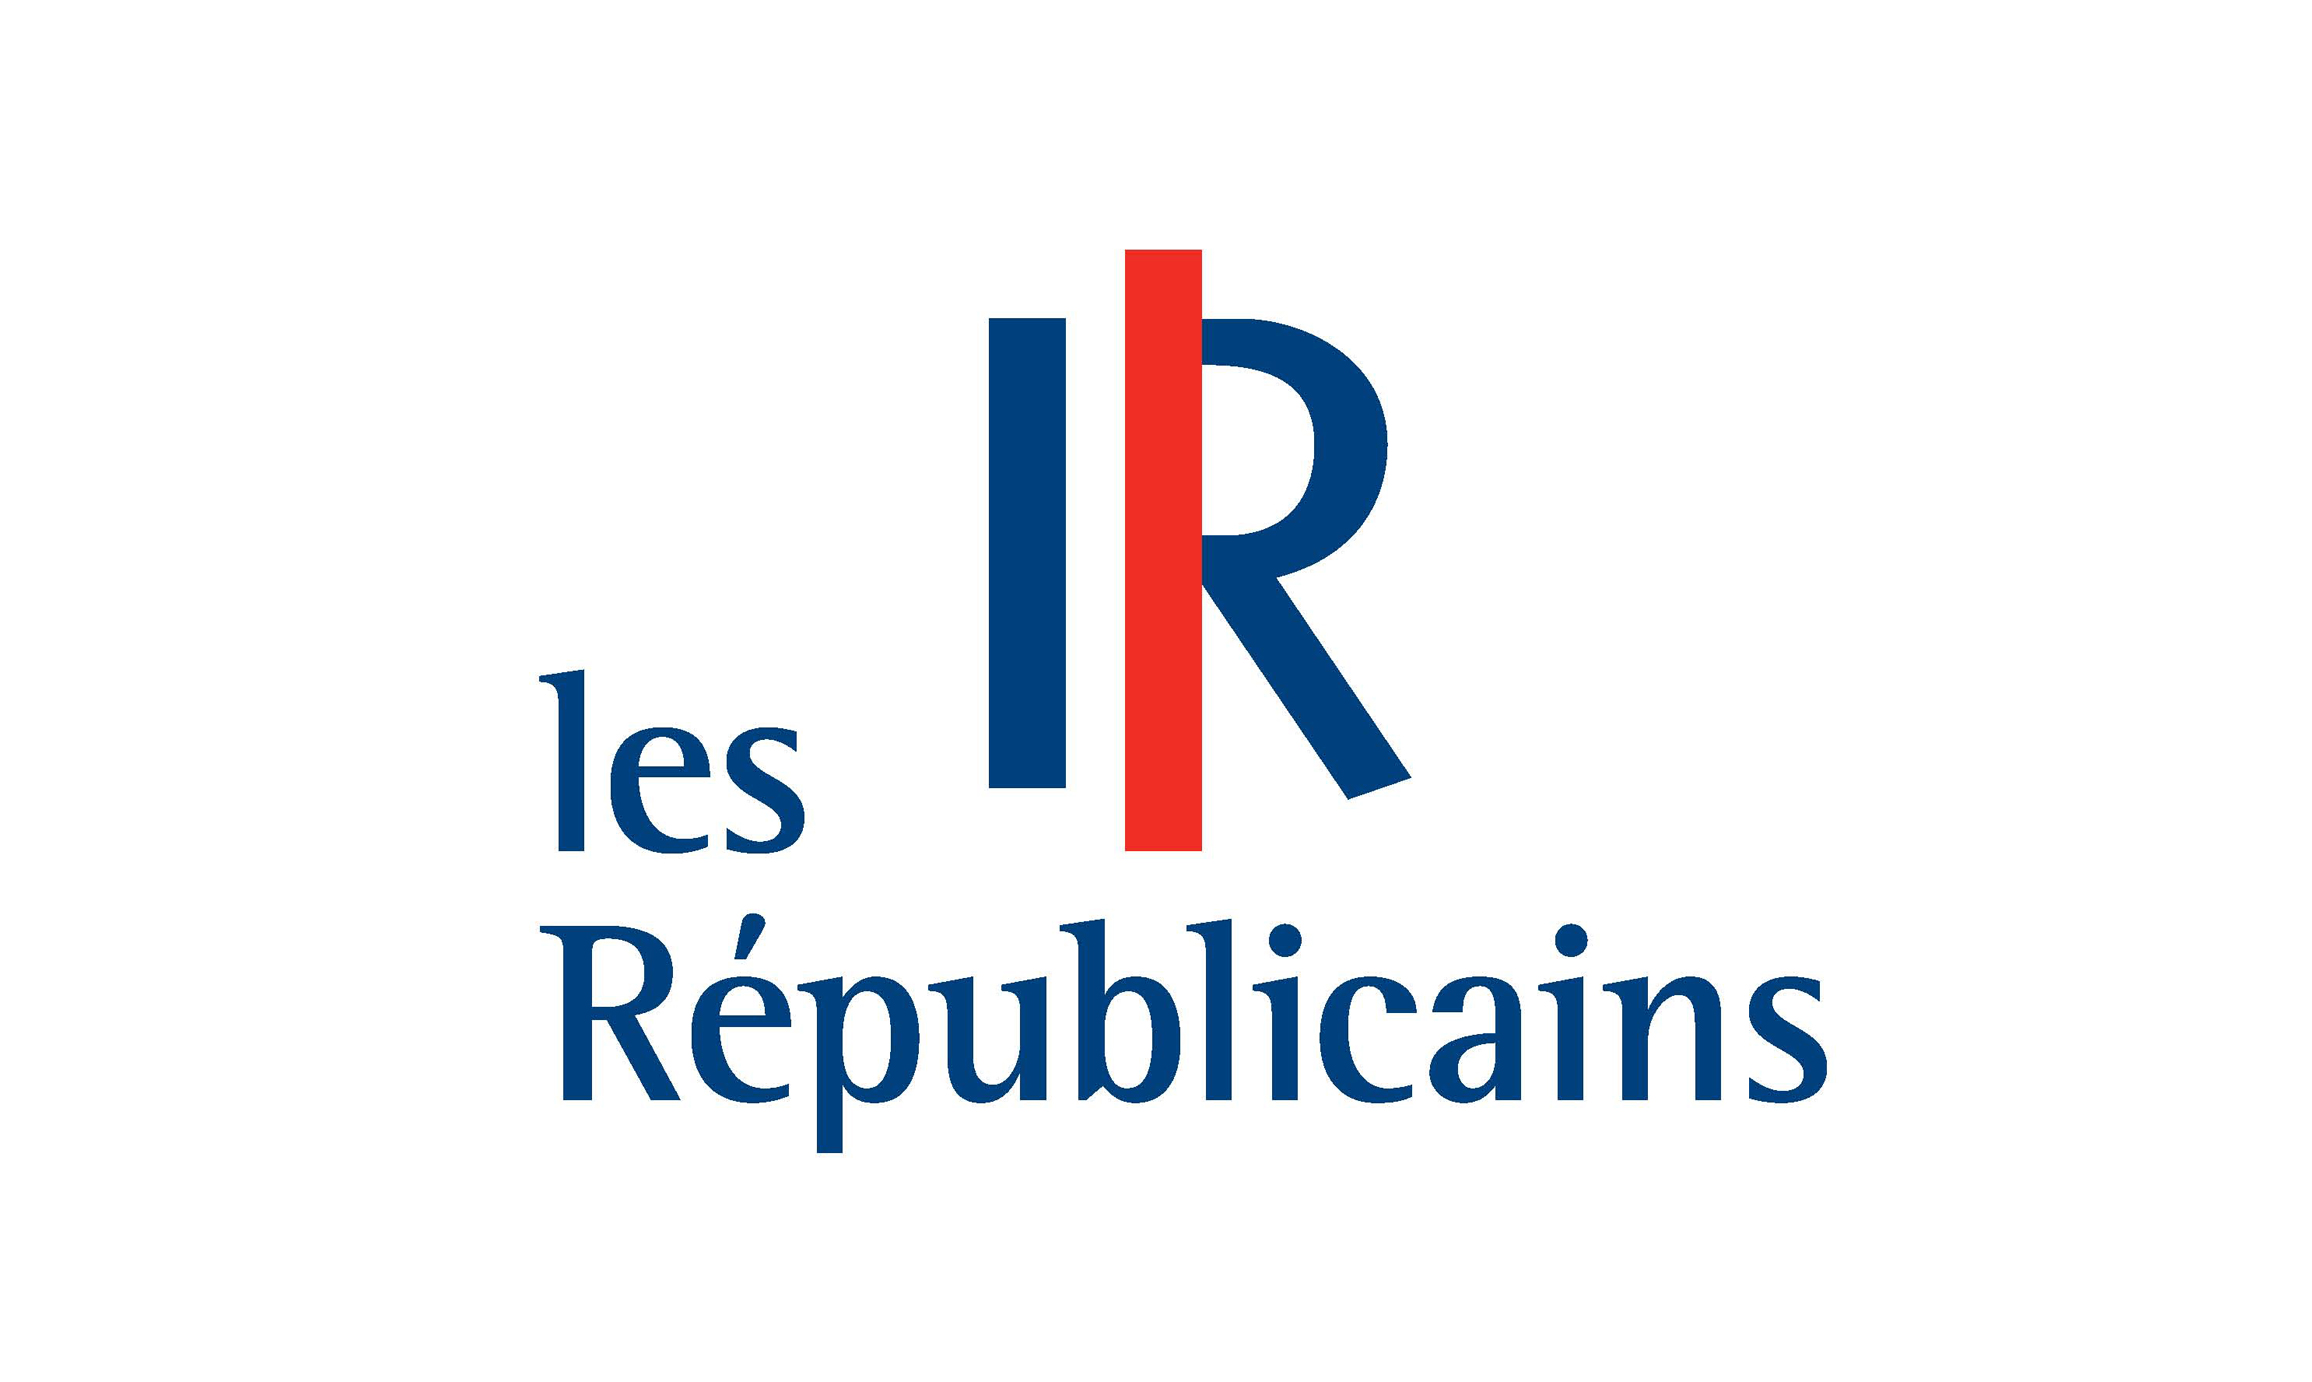 Les Republicains Logo Wallpaper